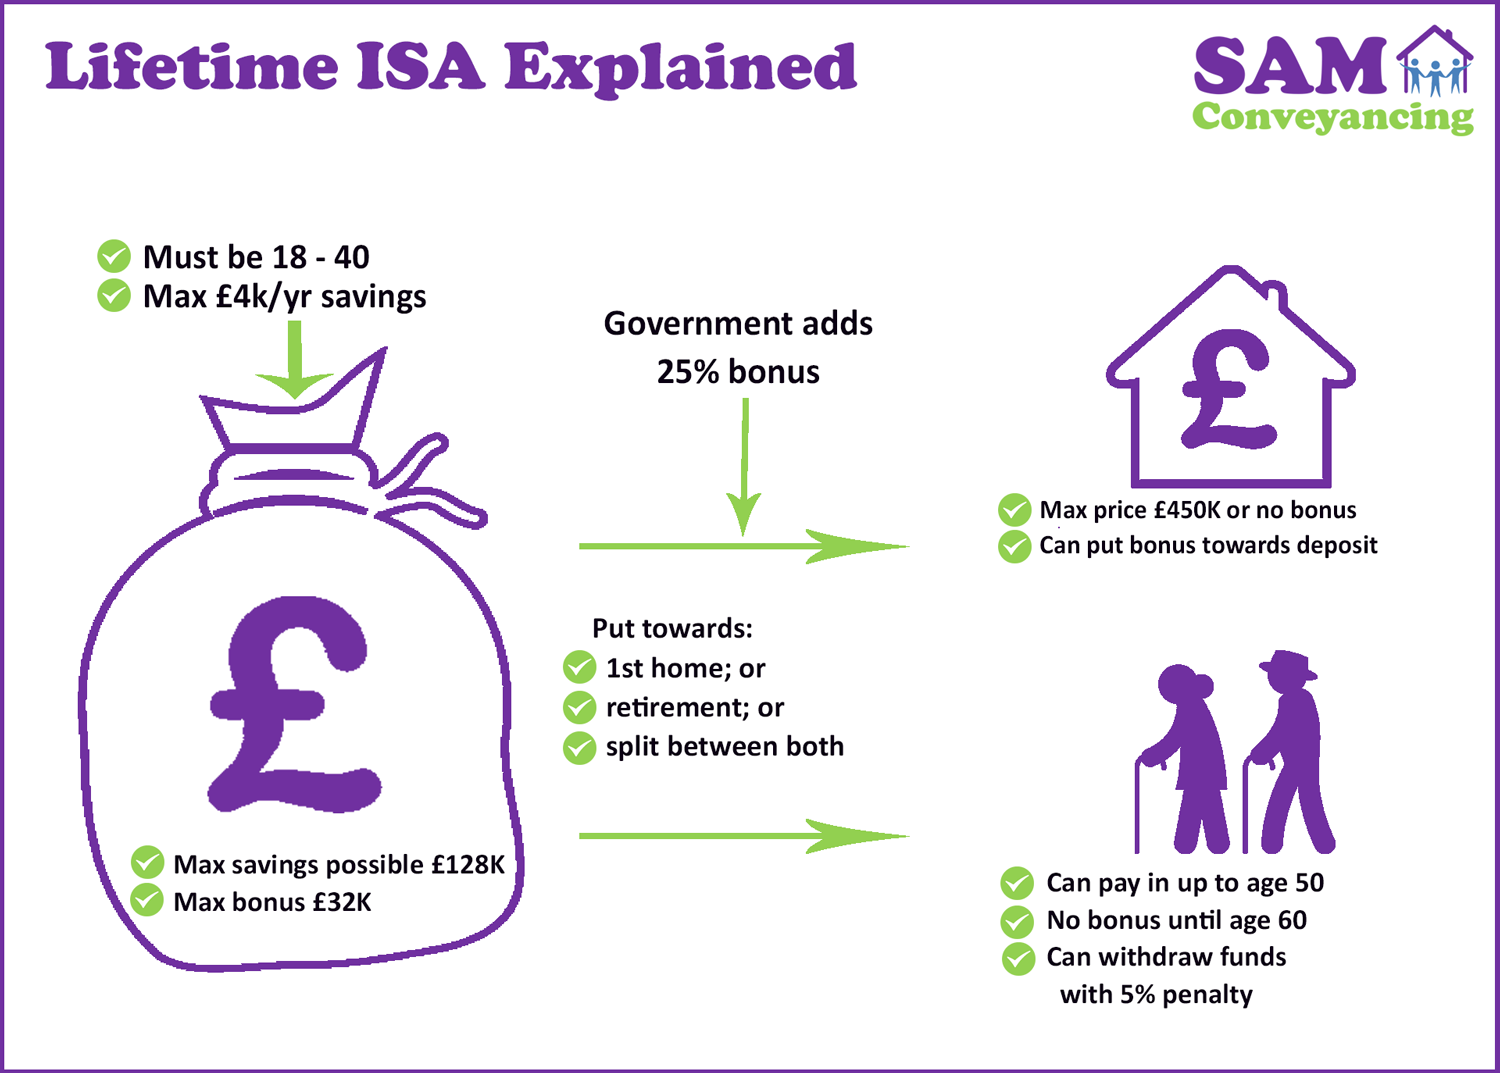 Lifetime-ISA-Diagram-SAMC